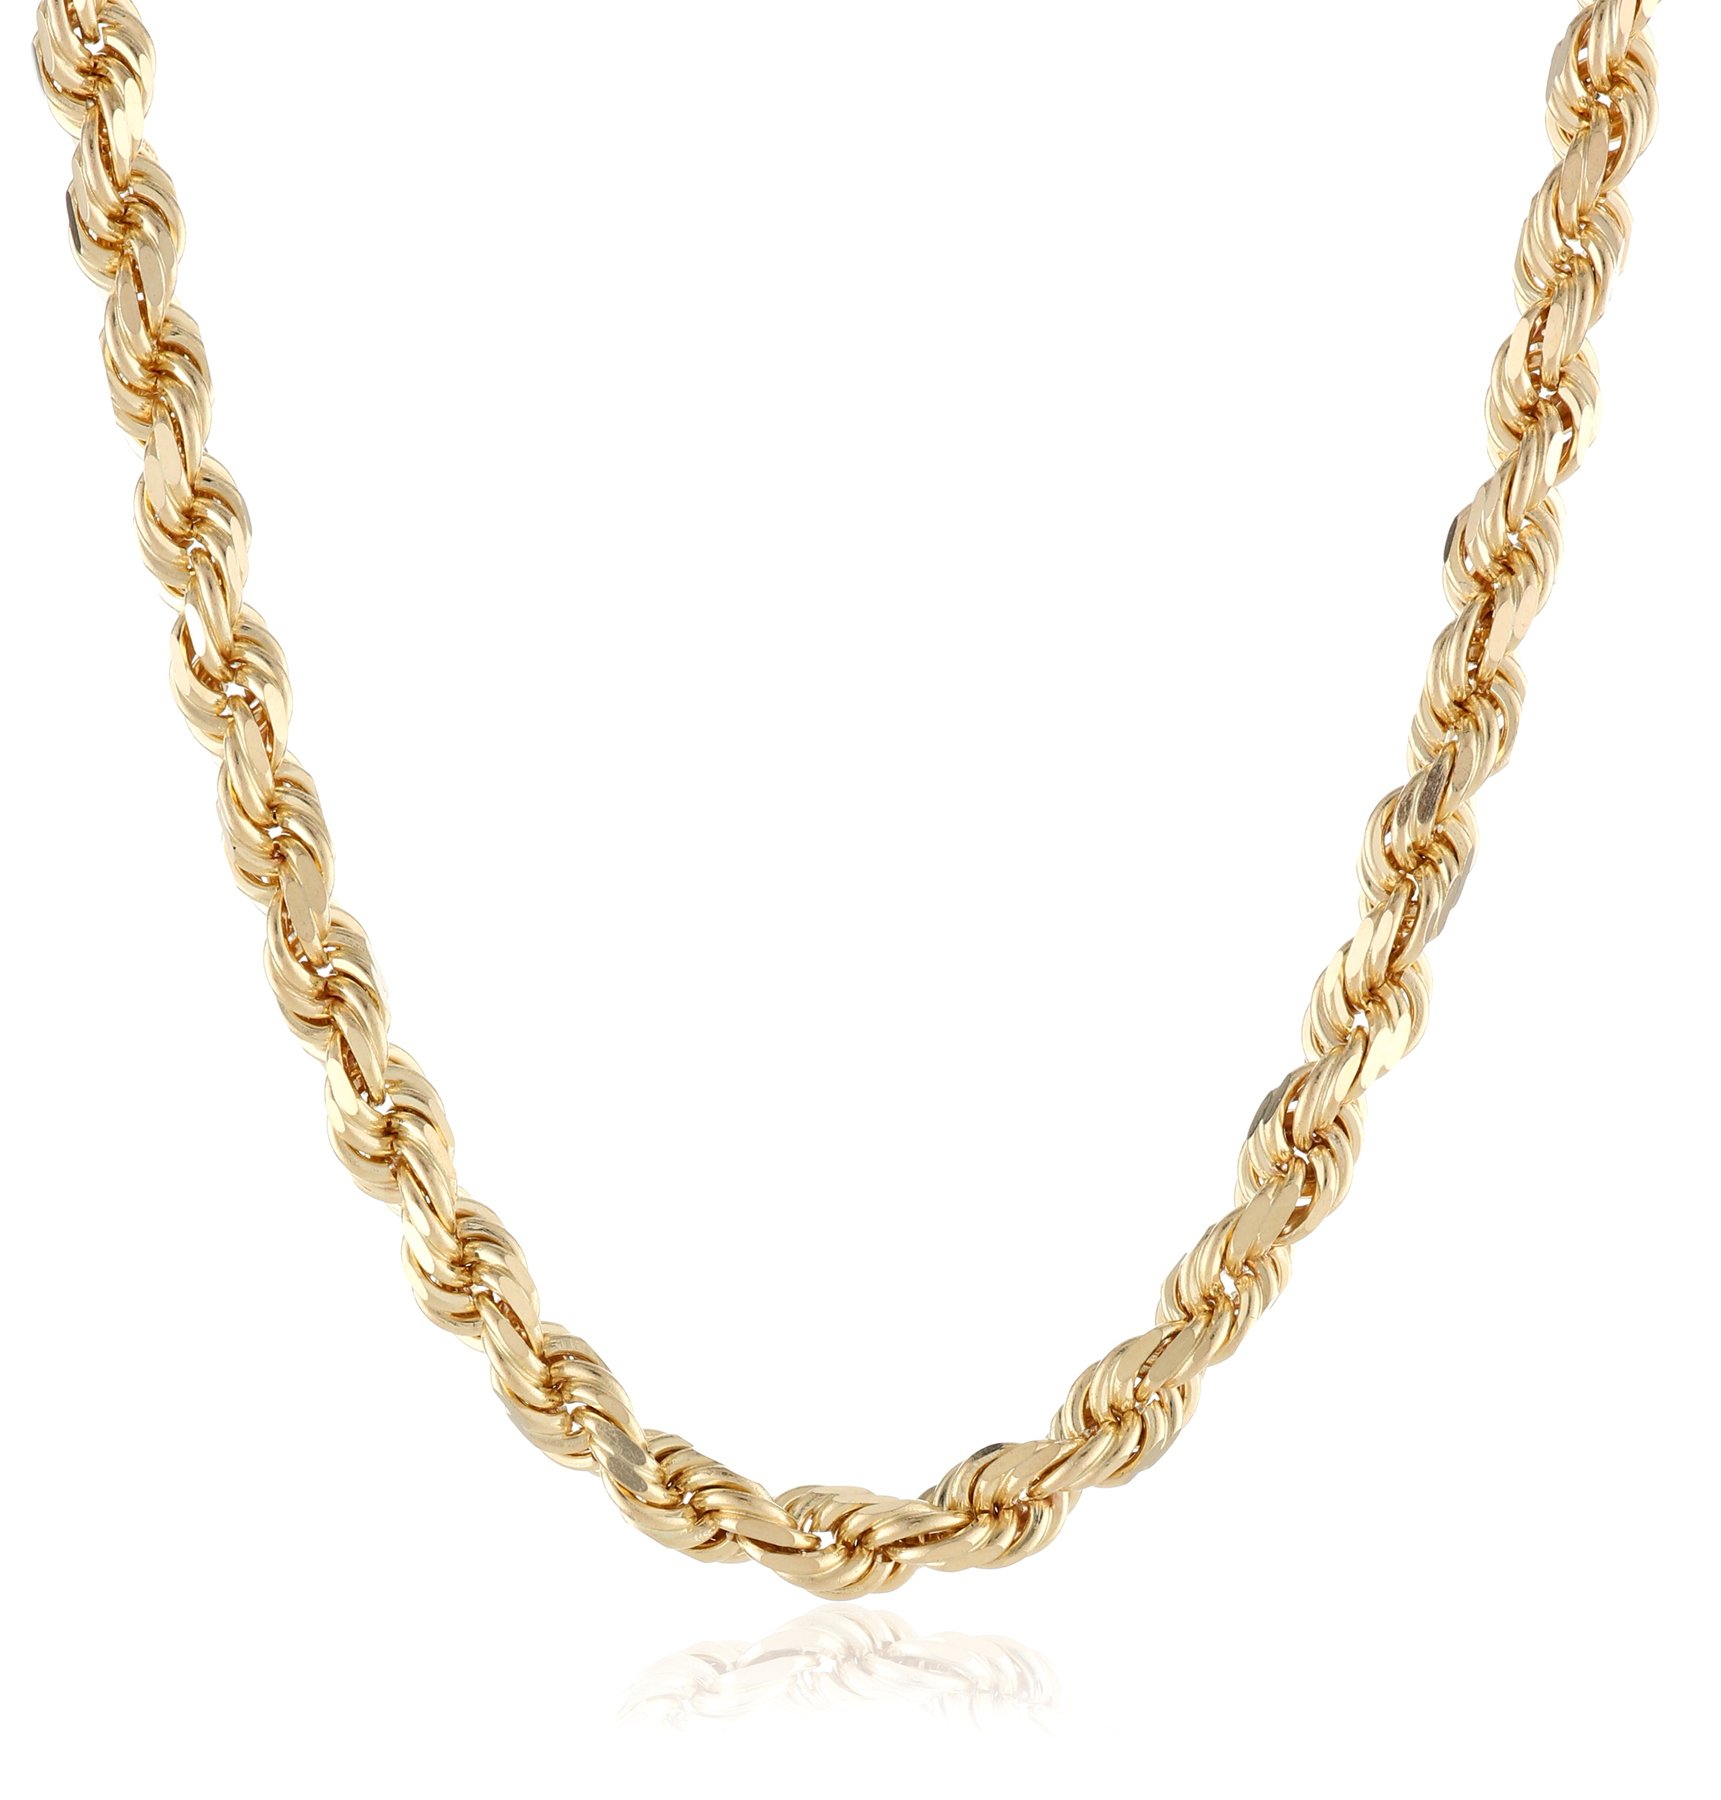 Men's 14k Solid Yellow Gold 4.5mm Wide Diamond-Cut Rope Chain Necklace, 30''